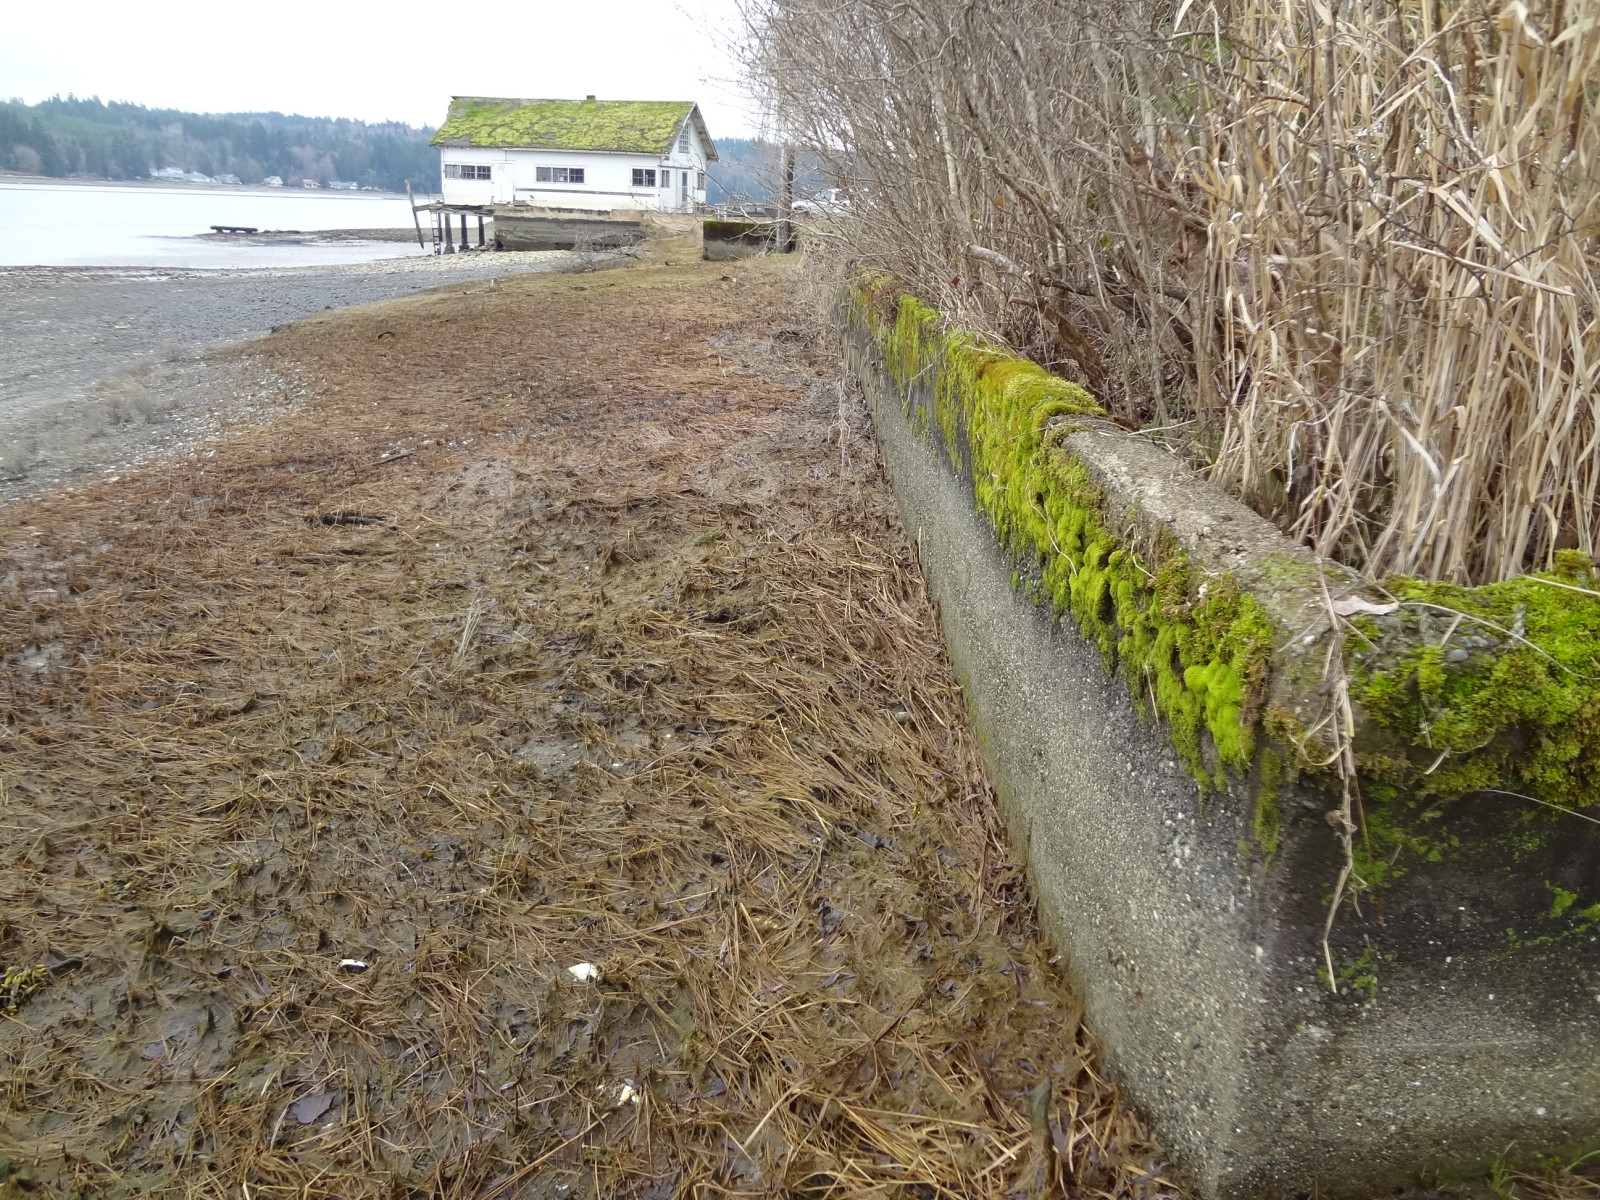 WRIA 14 Kennedy & Goldsborough Projects – South Puget Sound